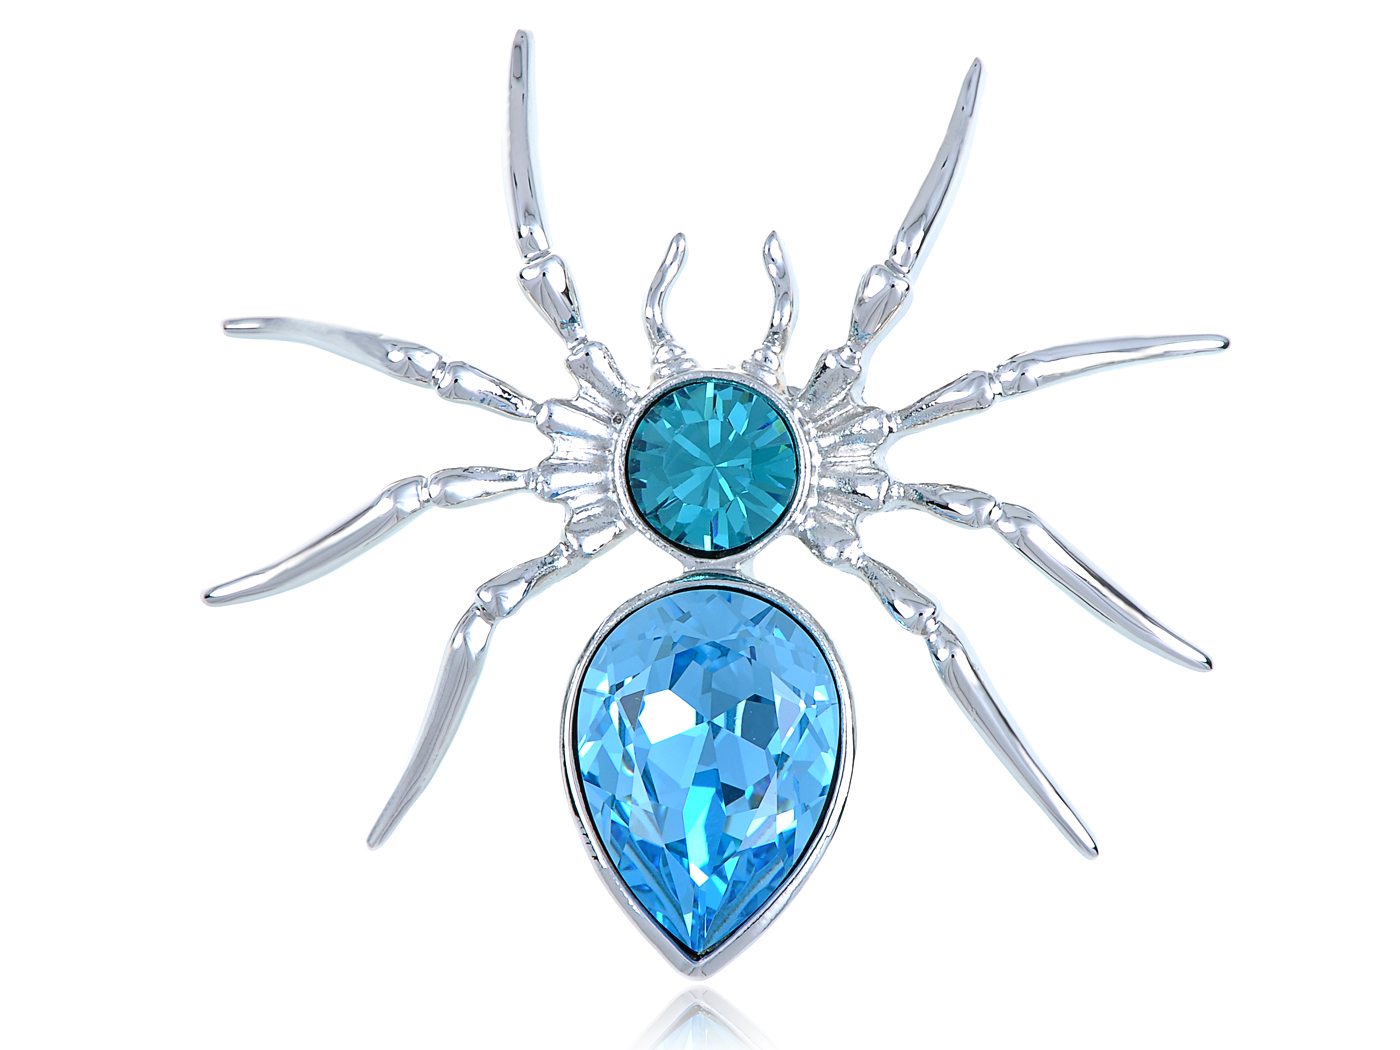 Aquamarine Light Blue Silver Tone An Itsy Bitsy Spider Fashion Brooch by